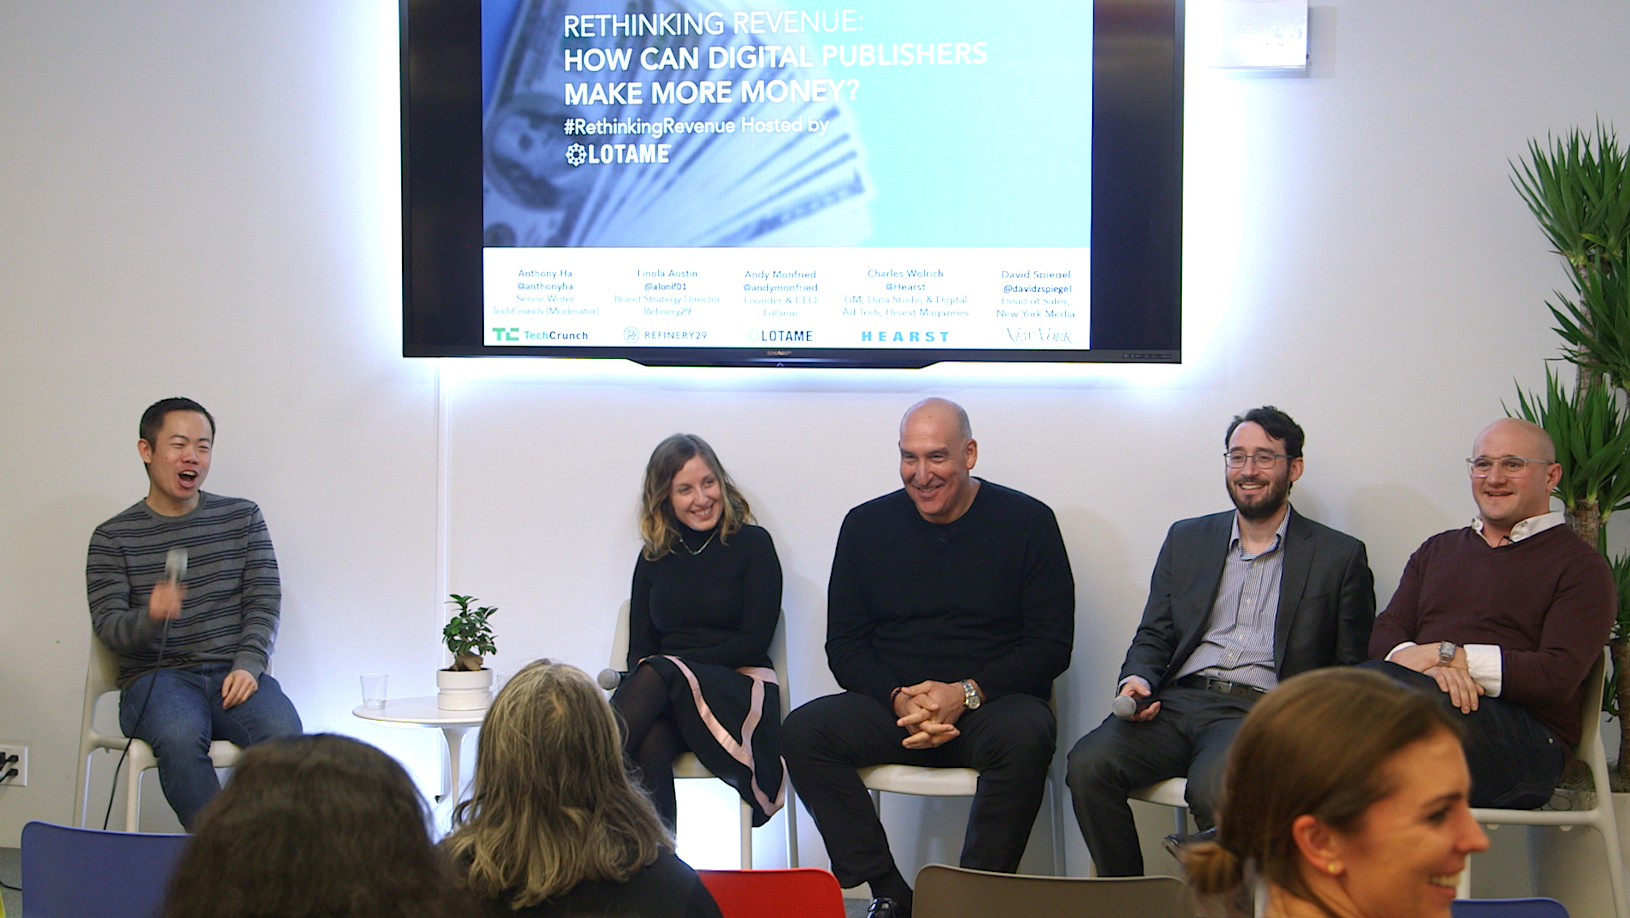 "Publishers ""Rethink Revenue"" At Thought Leadership Panel"